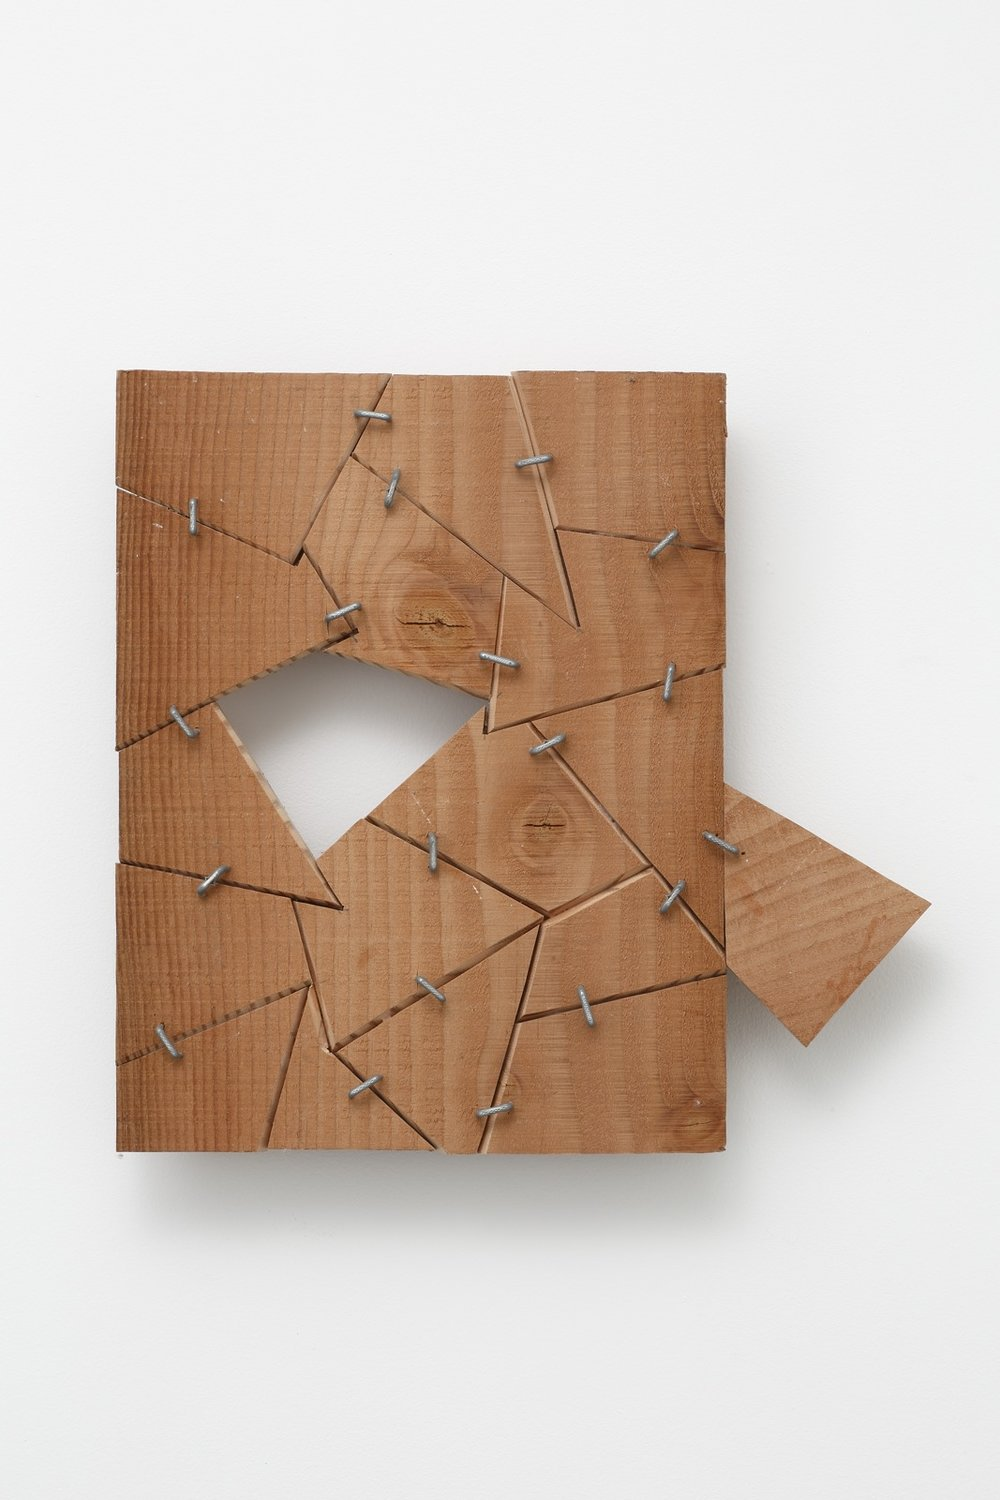 Shifting Accumulation , 2015 移集 ( ishū ) Wood, metal staples 14 1/4 x 14 7/8 x 2 1/4 inches 36.2 x 37.8 x 5.7 centimeters